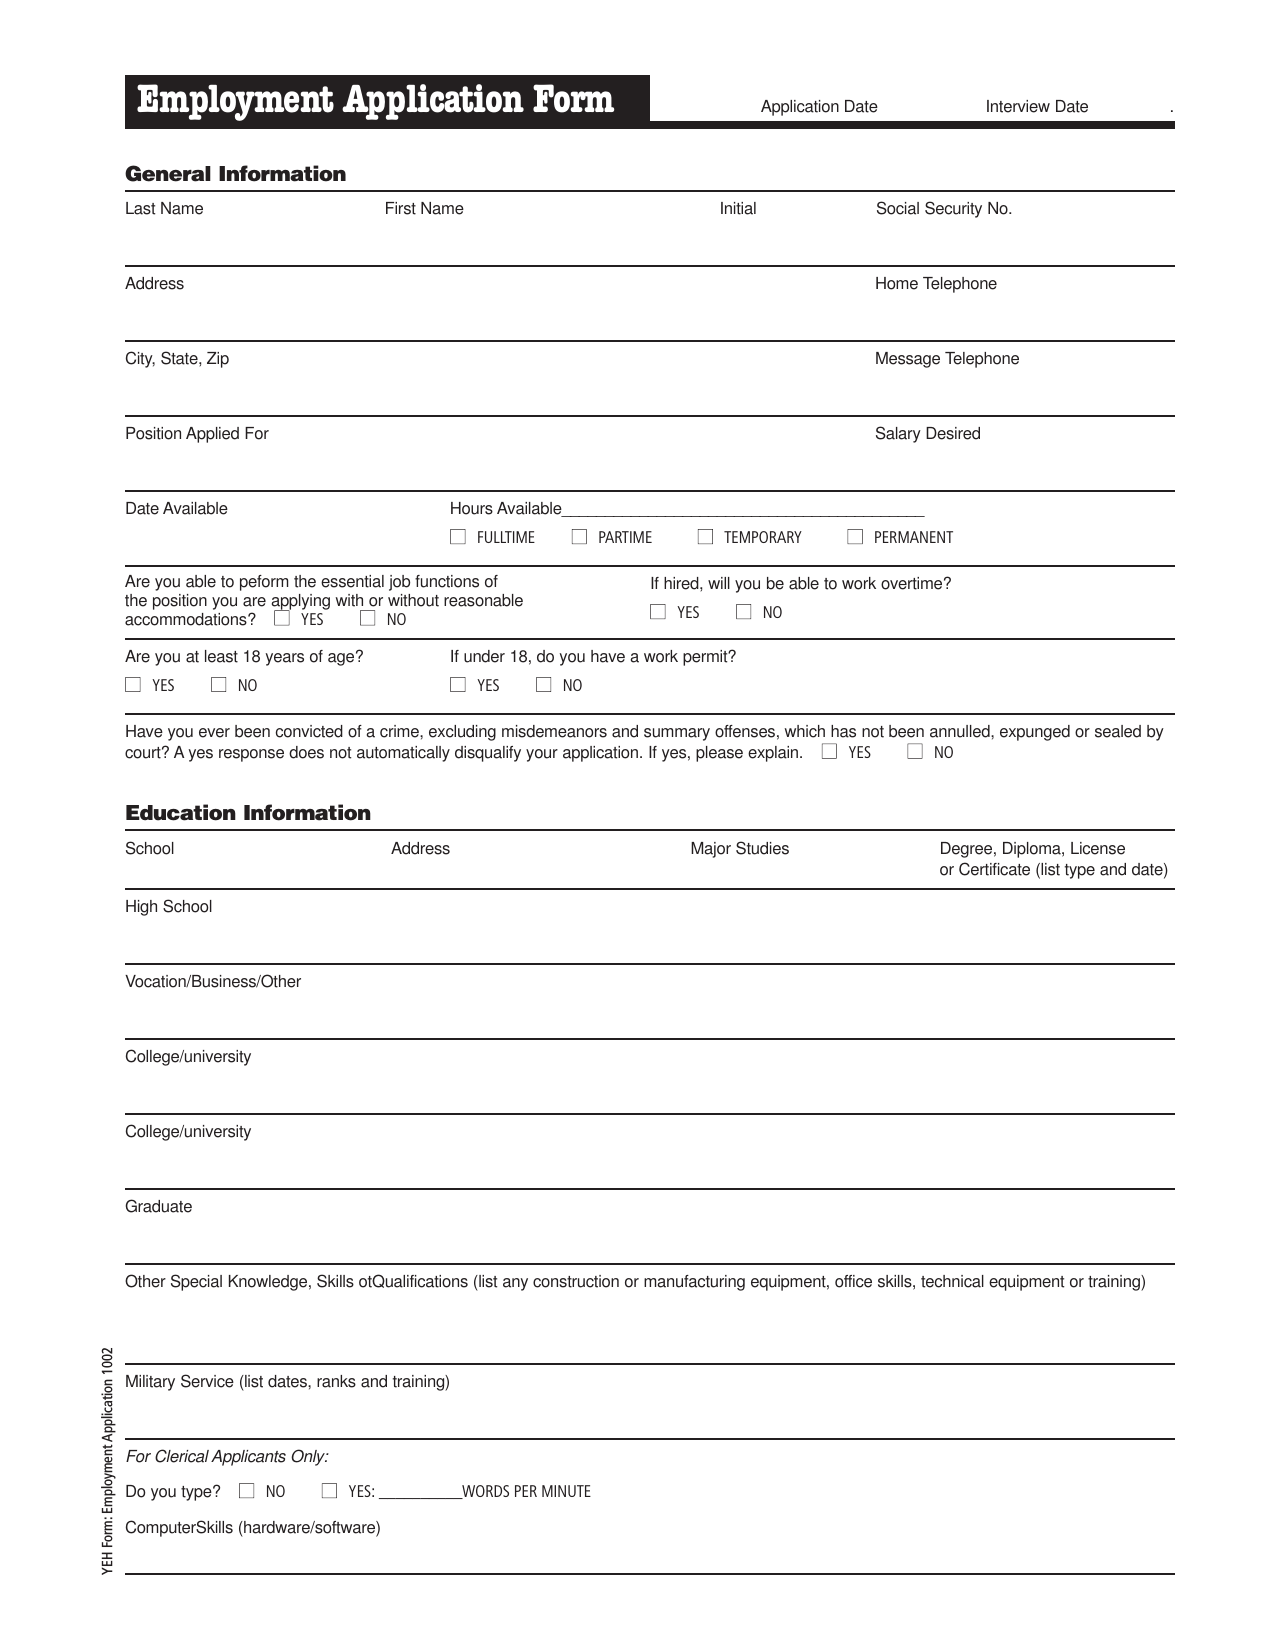 download meijer job application form careers pdf freedownloads net